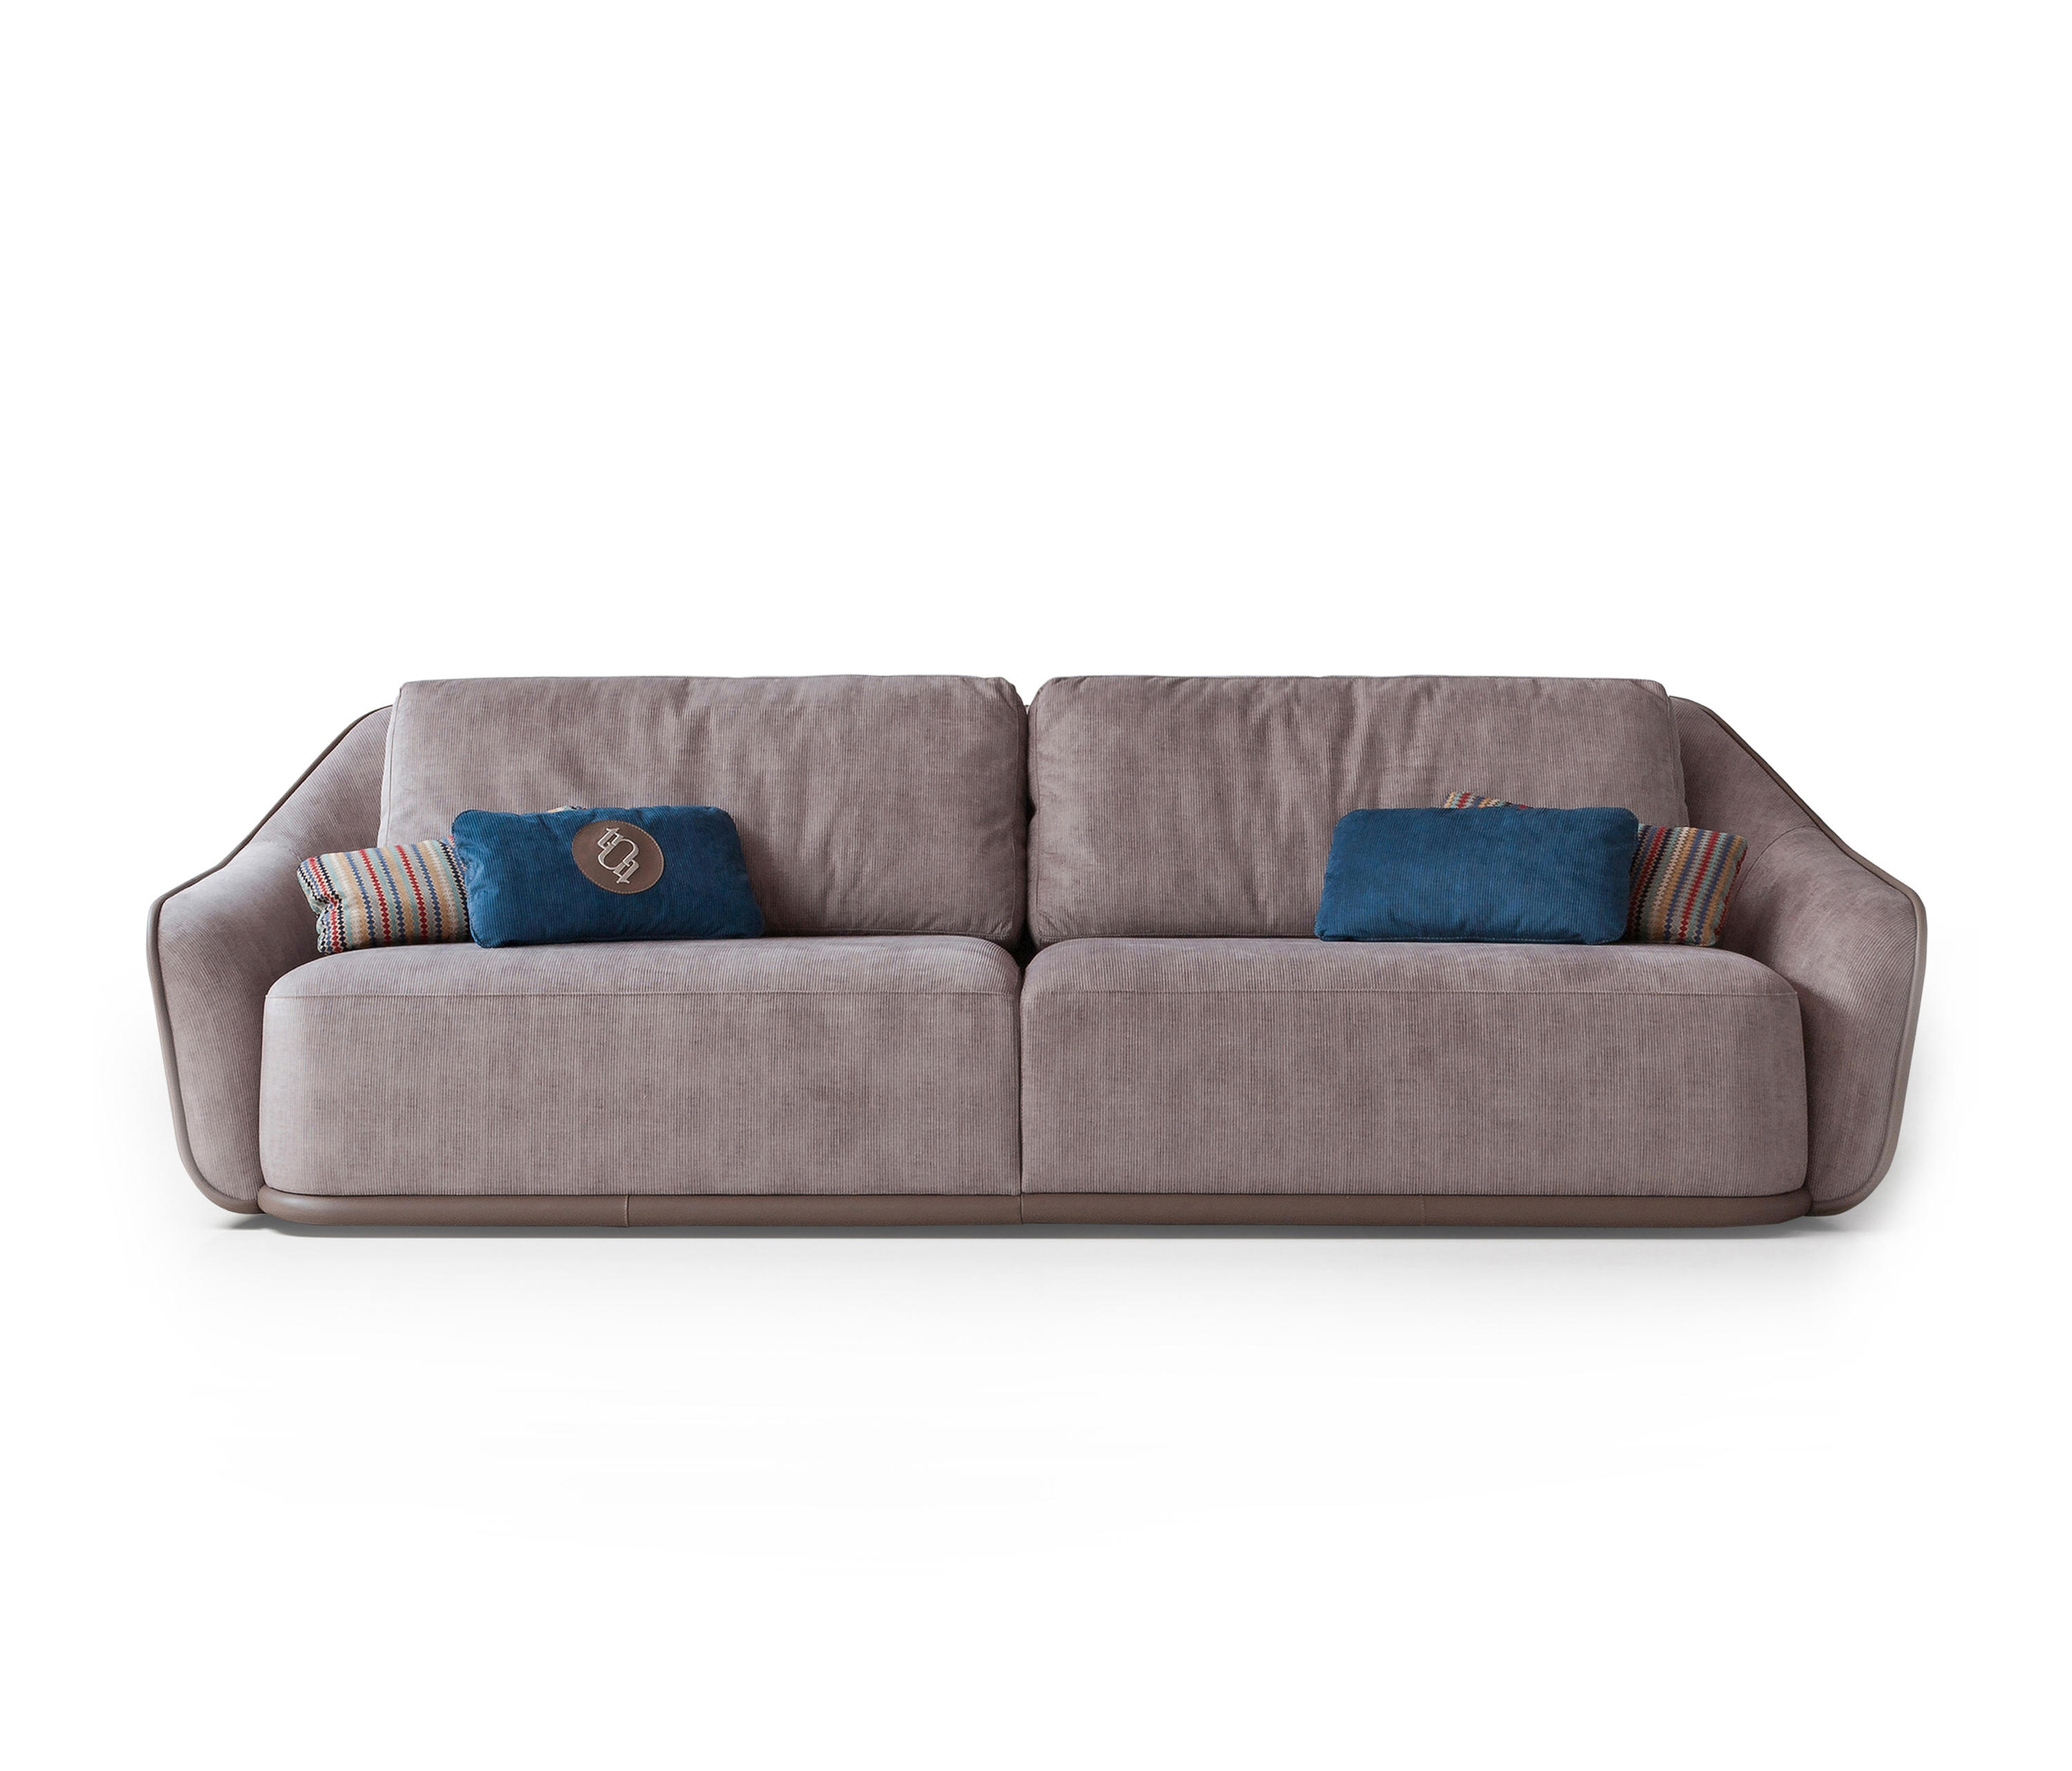 1739 SOFA Sofas from Tecni Nova